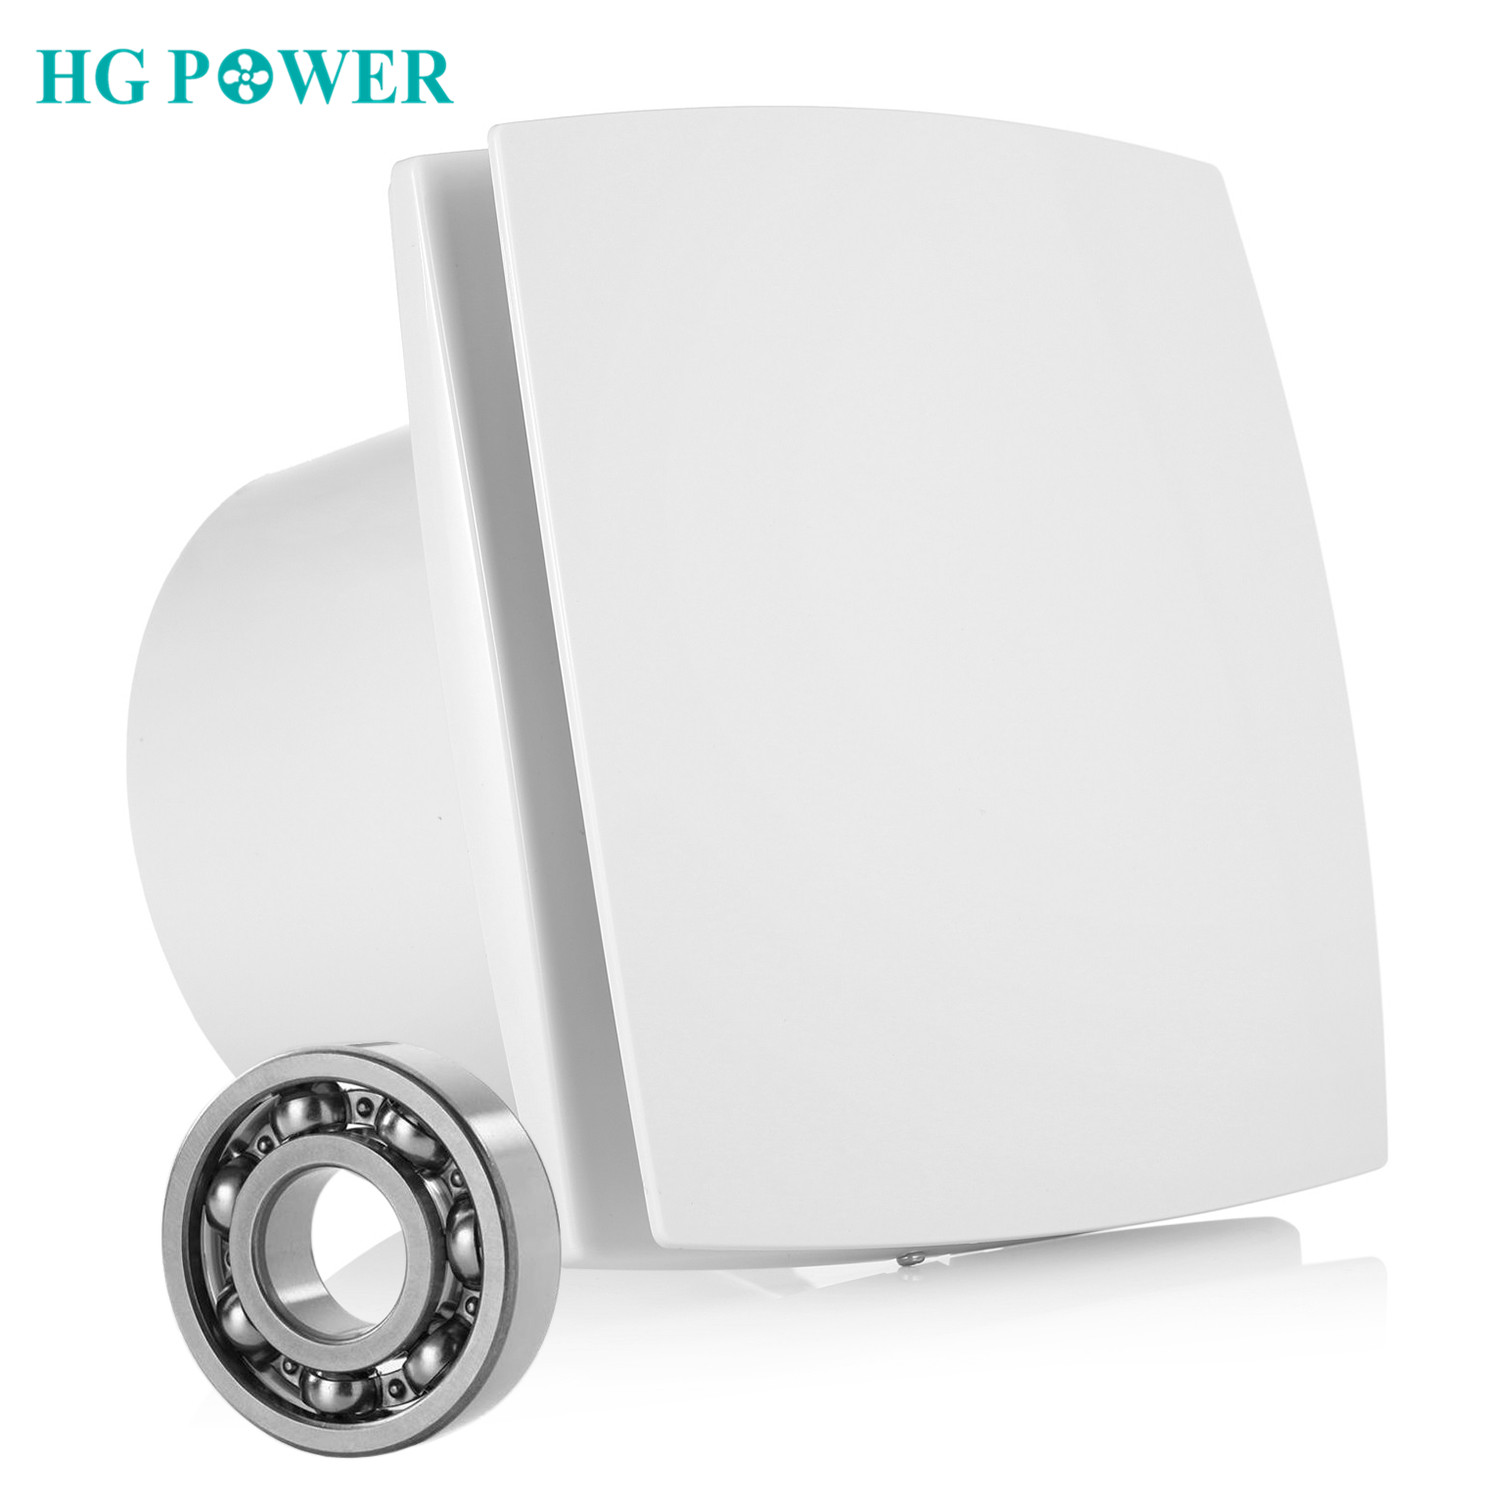 110v 6inch Exhaust Fan Silent Extractor Home Bathroom Kitchen Bedroom Toilet Ventilation Low Noise Ventilator Home Wall Mounted